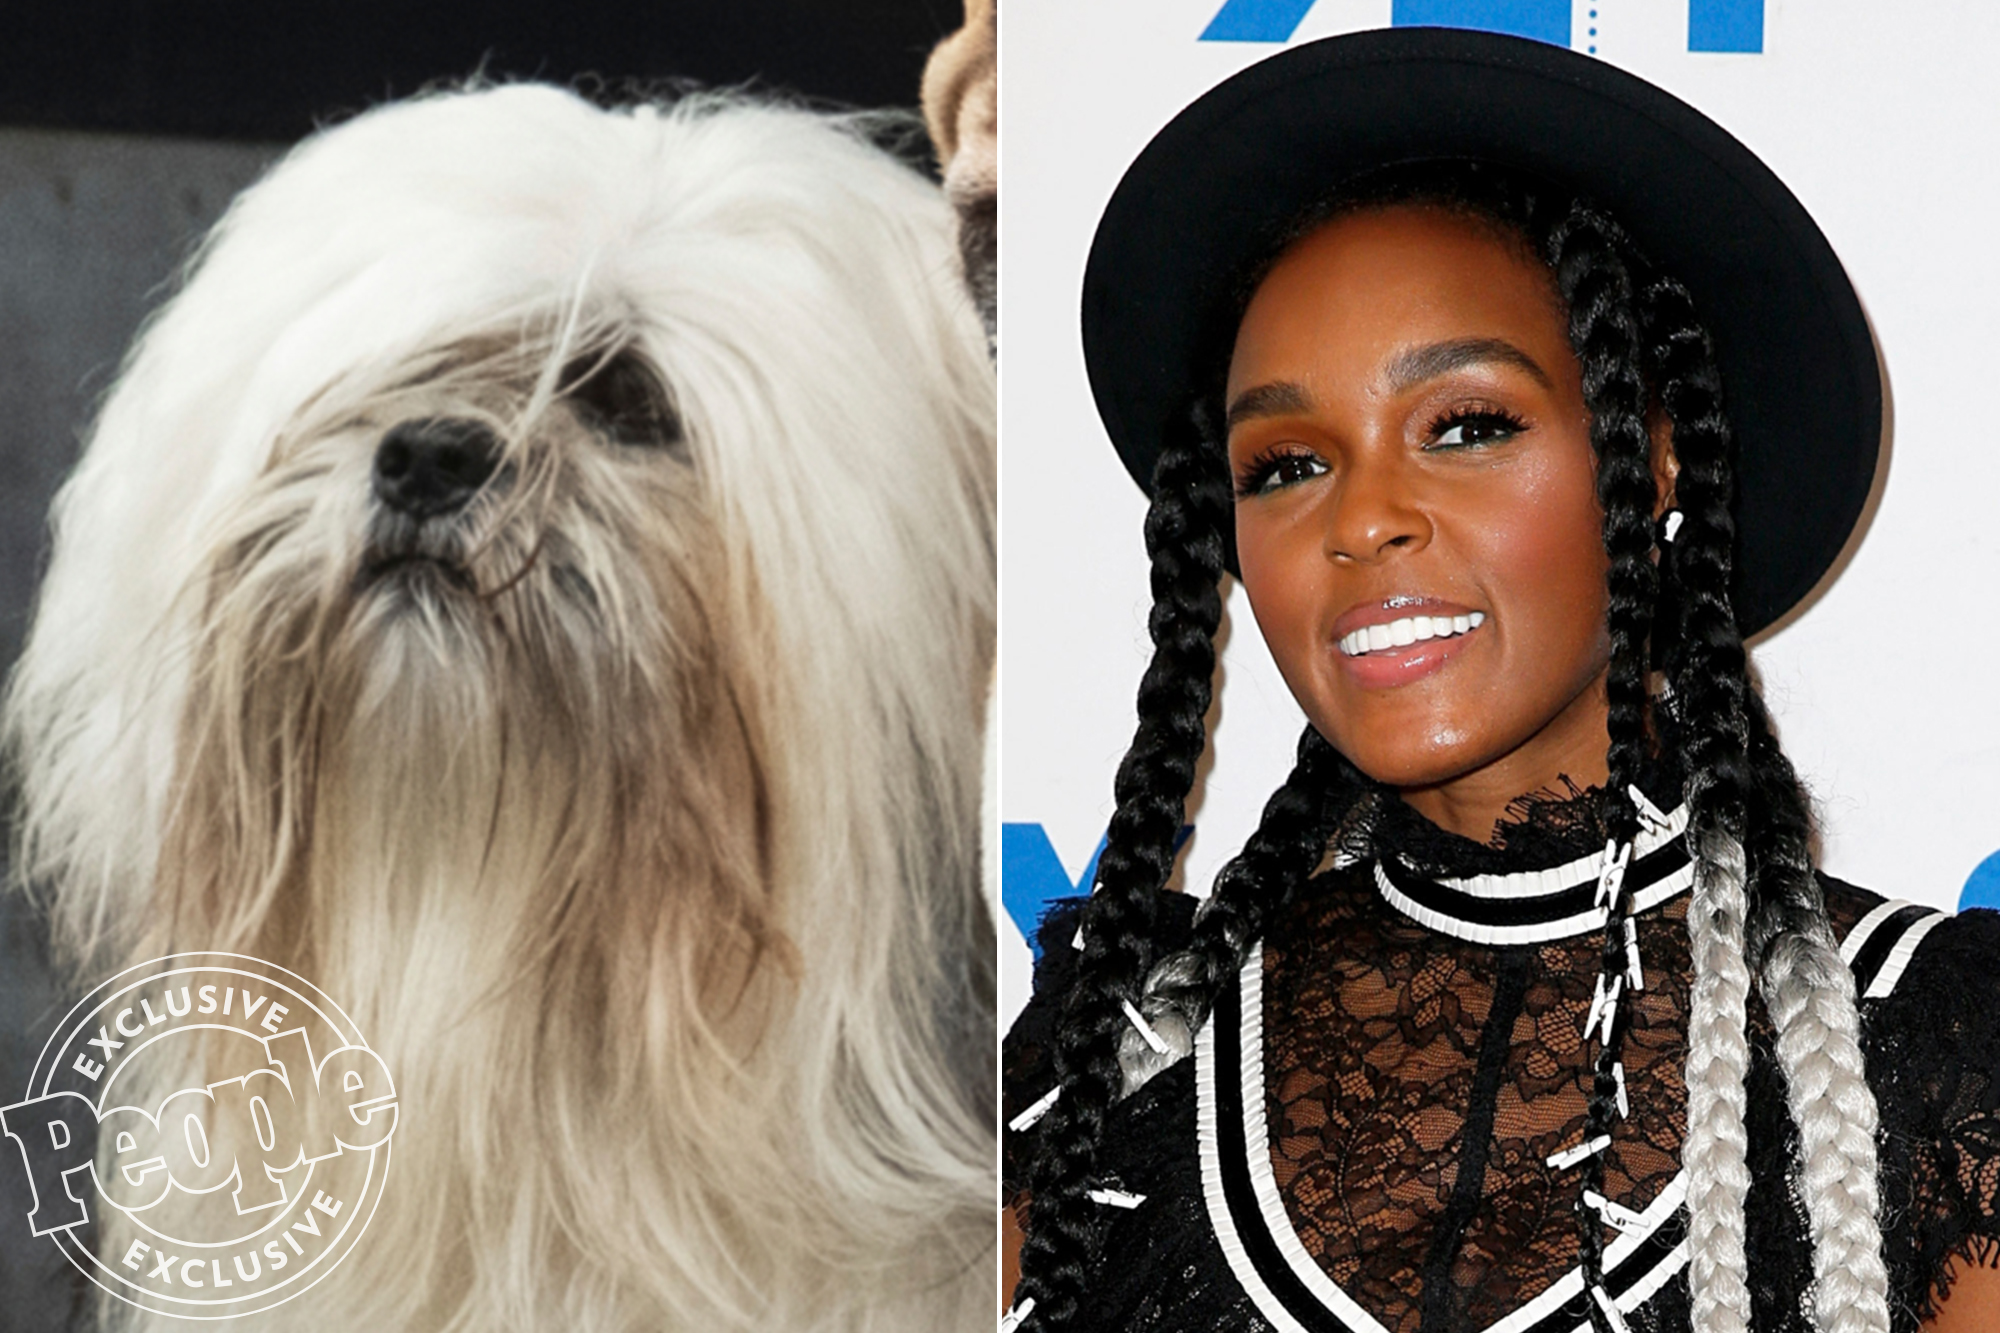 Live Action Lady and the Tramp Janelle Monáe as Peg